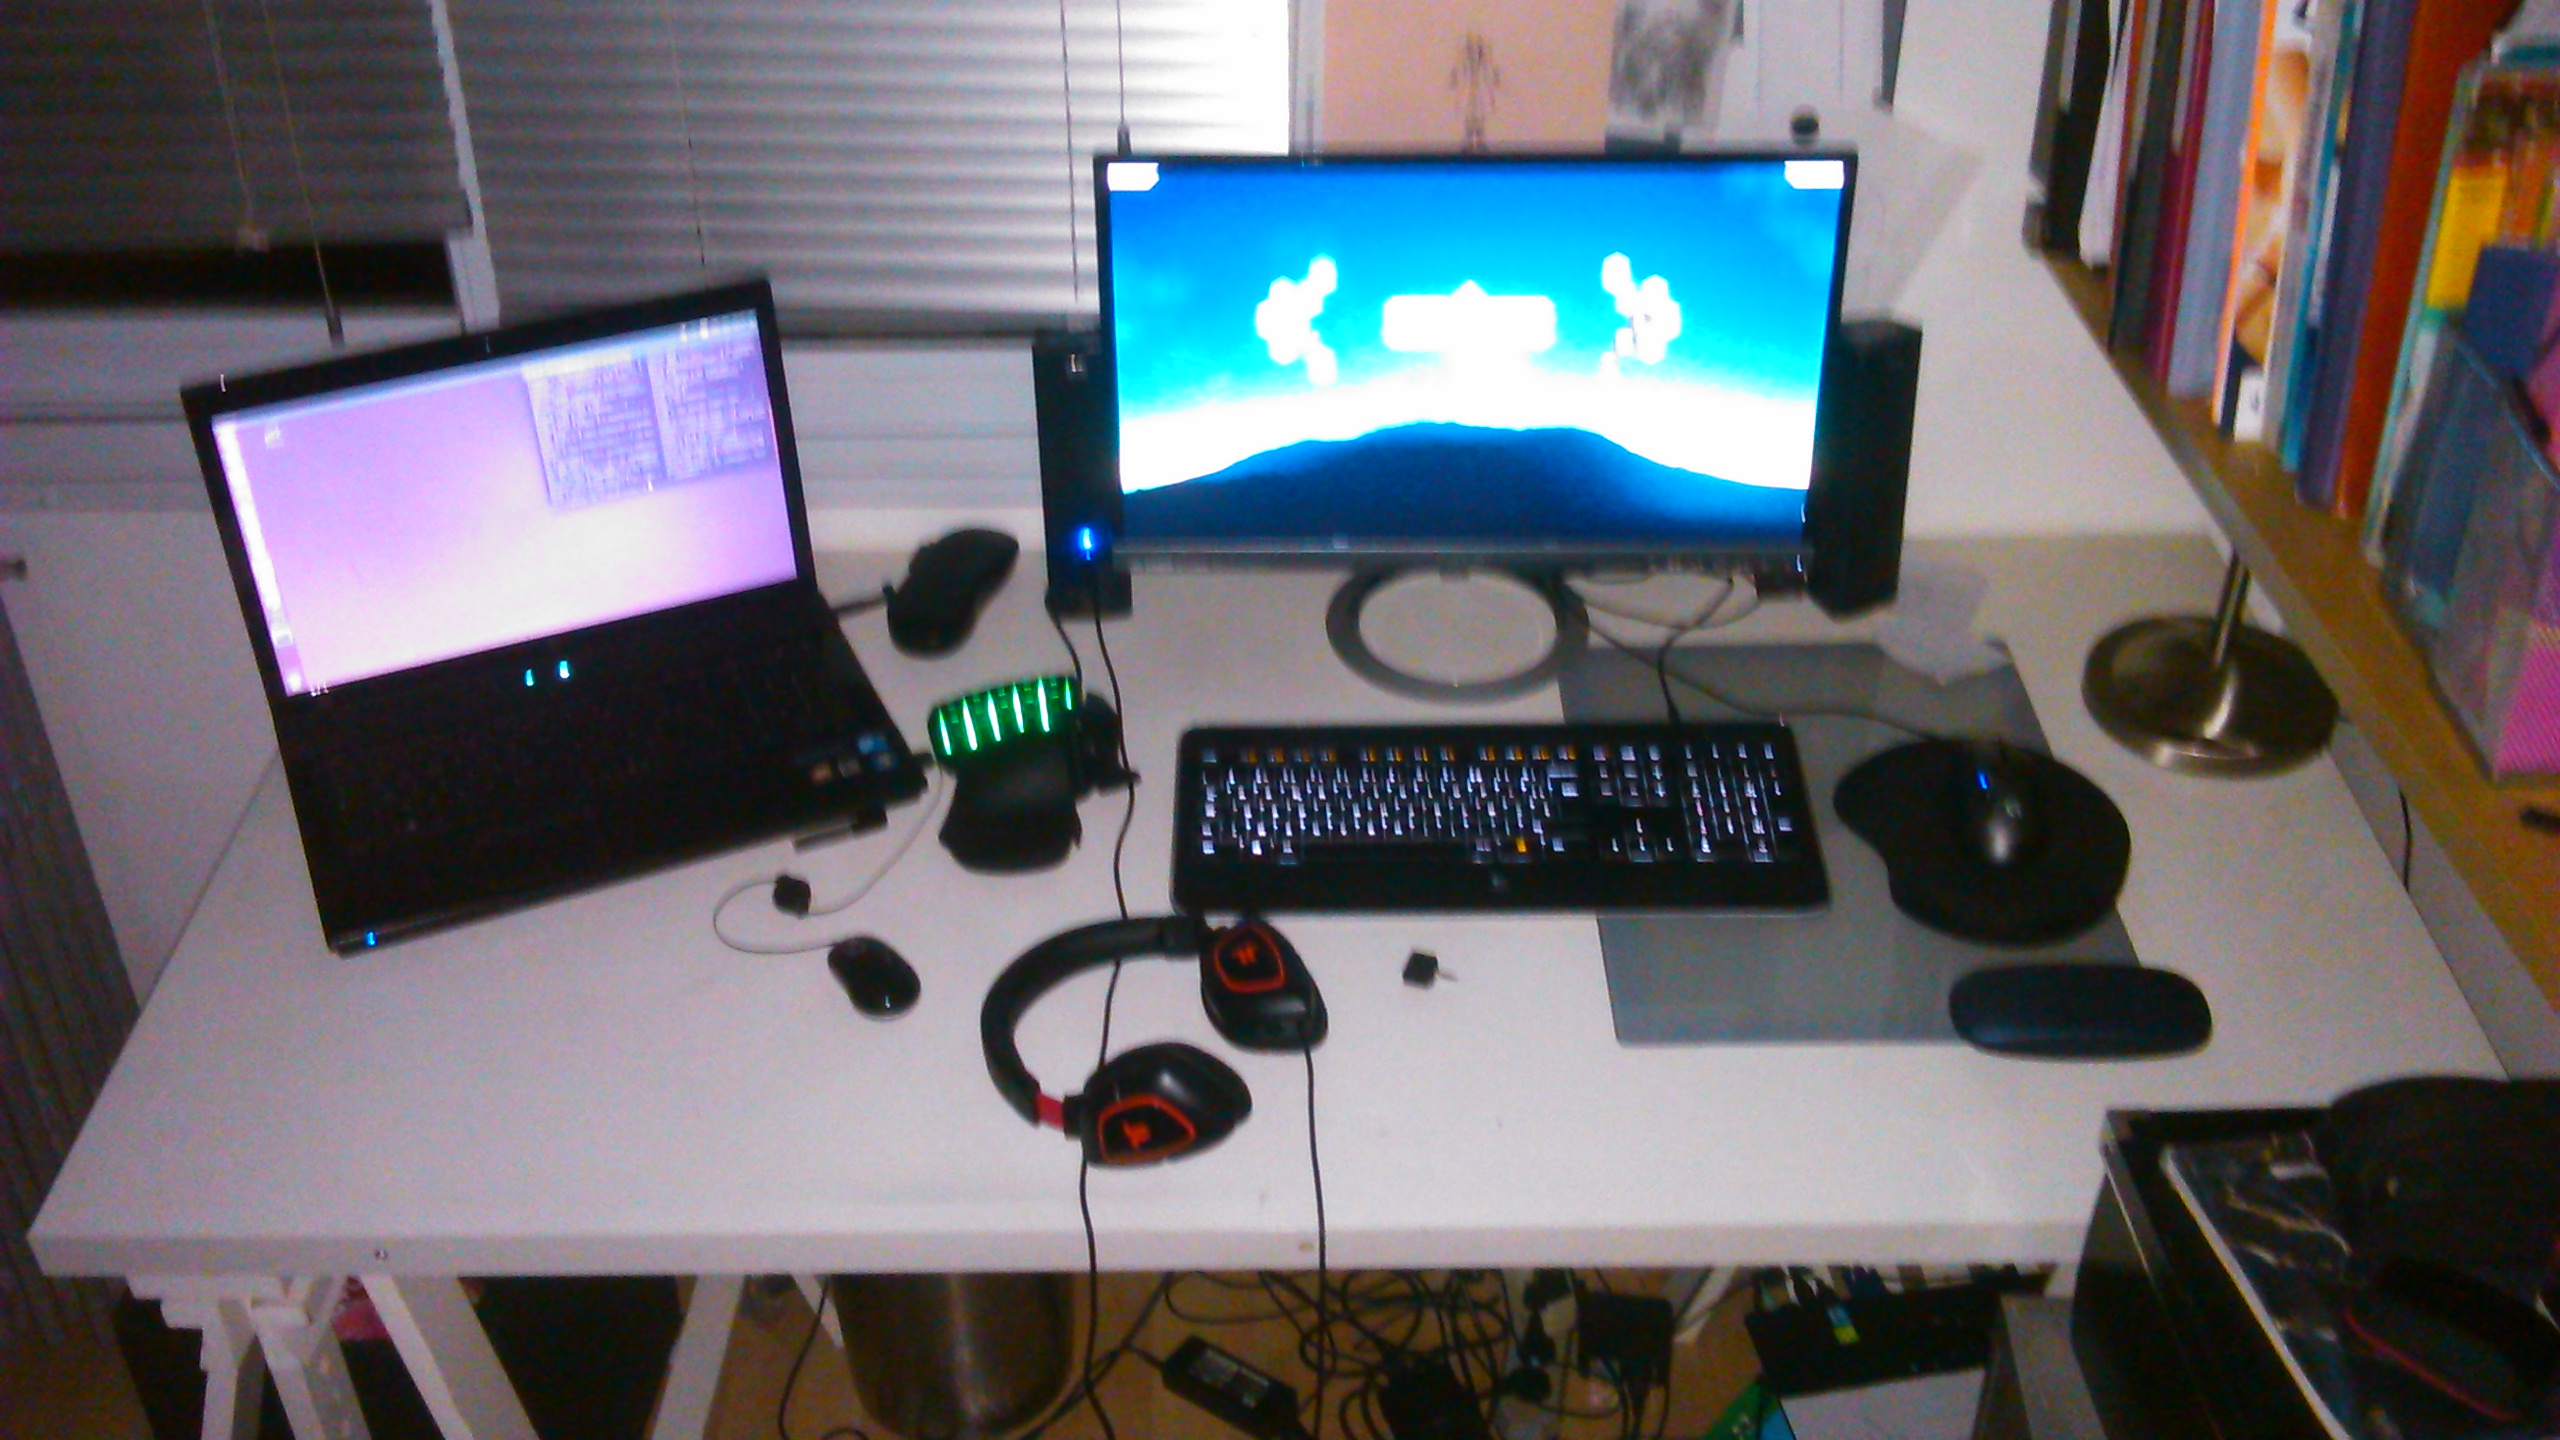 Your setup now compared to 5 years ago? - Page 3 - General